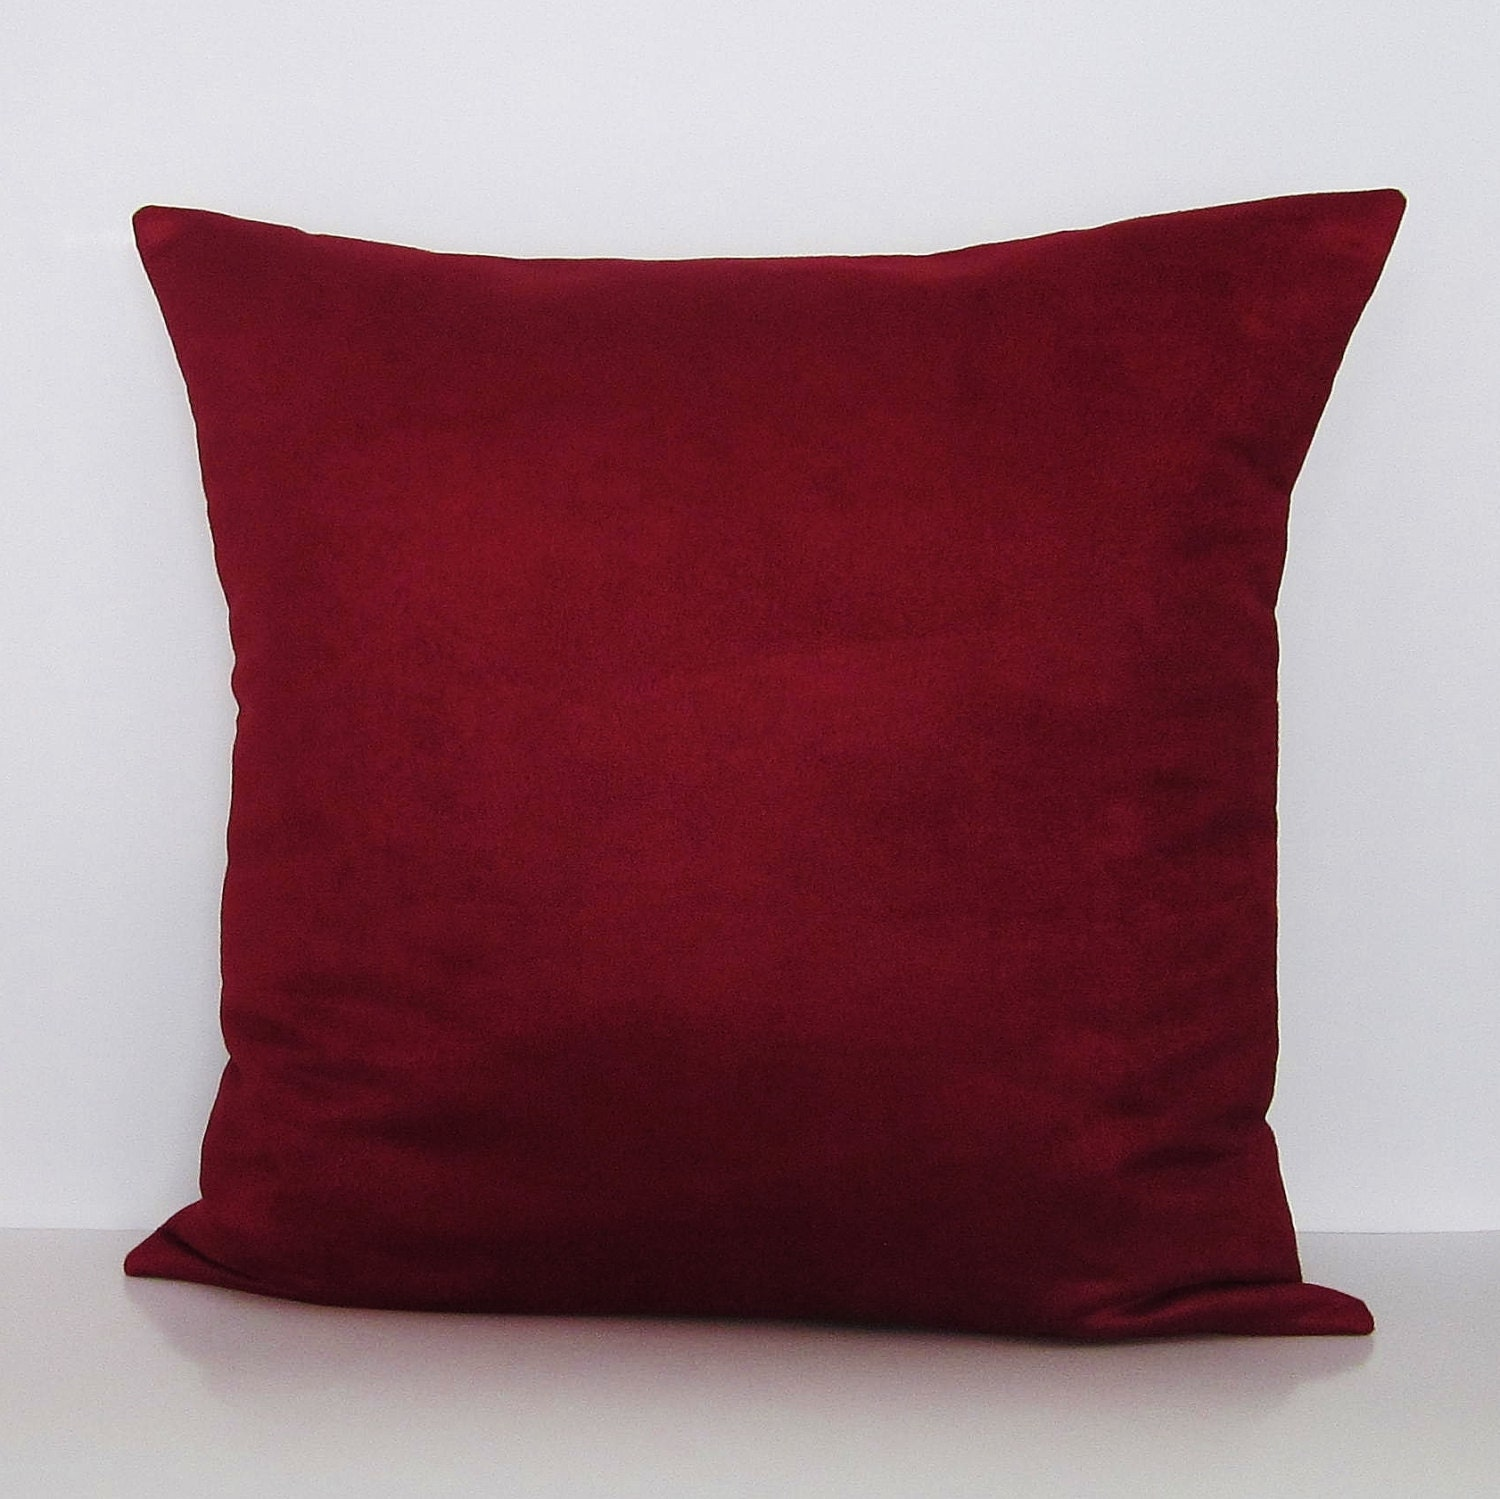 Burgundy Microfiber Throw Pillows : Burgundy Suede Pillow Cover Home Decor Decorative Accent Toss